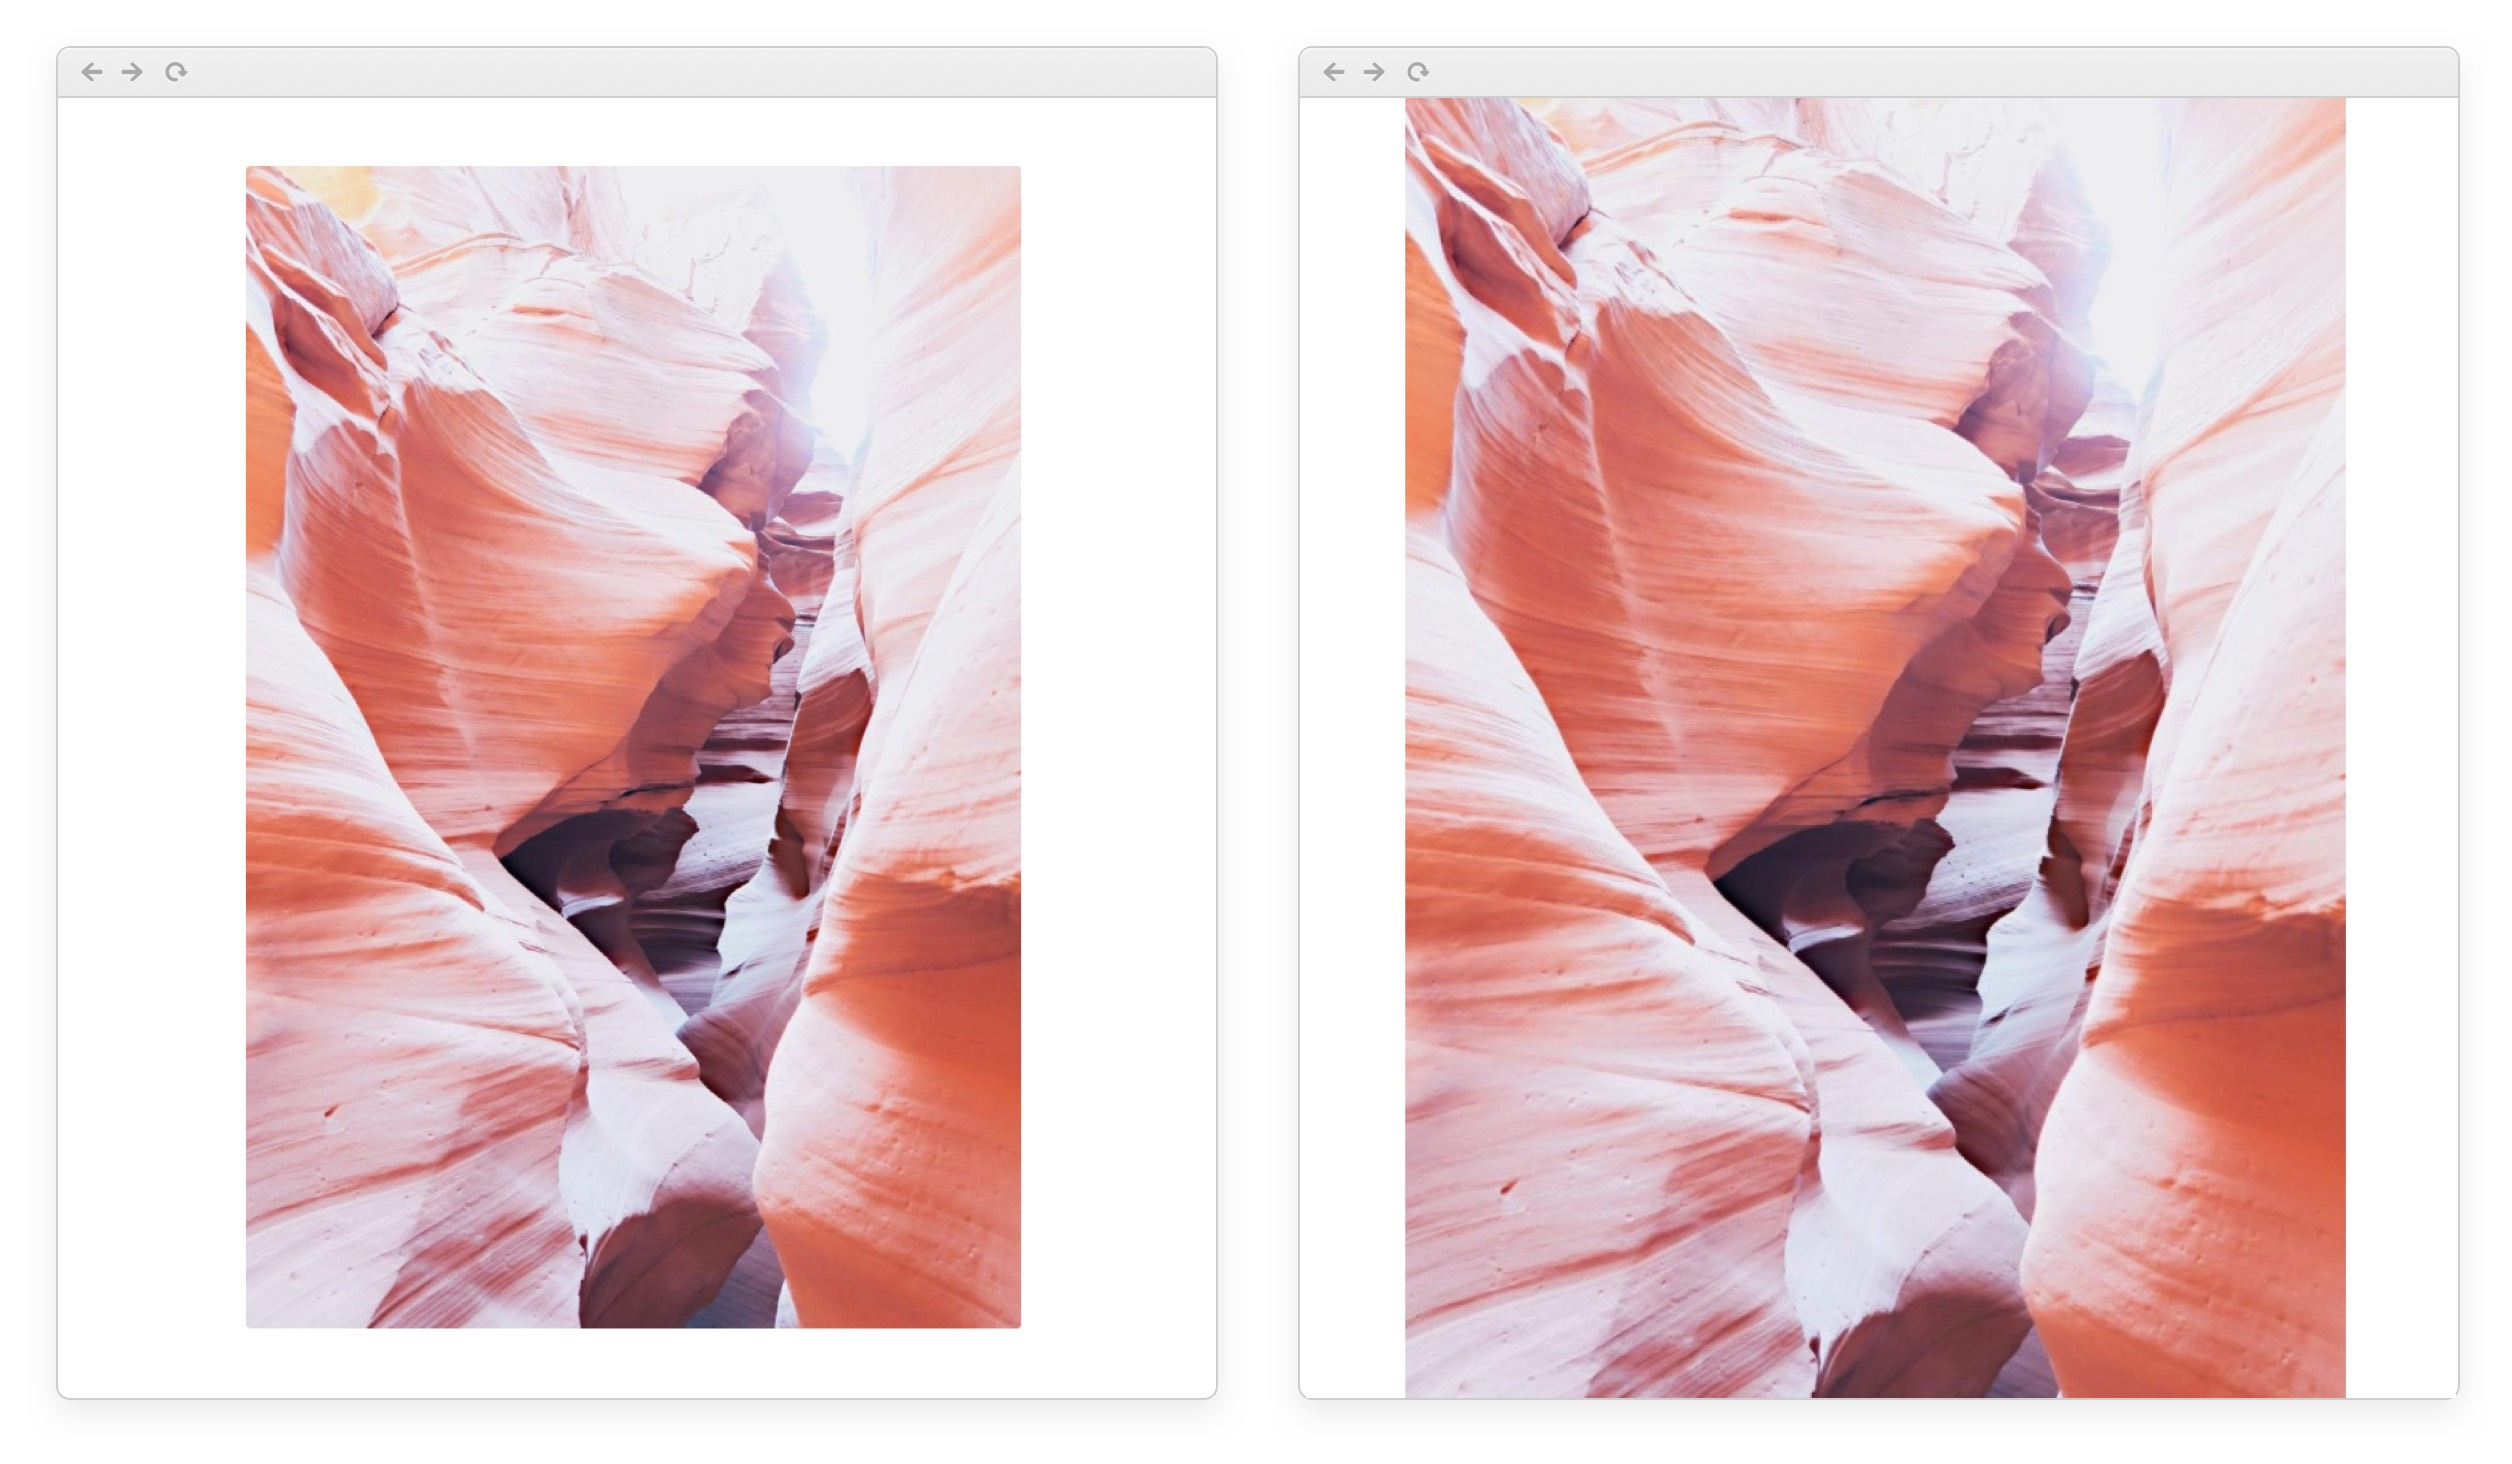 Left: with the new design, photos always fit in your view. Right: before, tall photos could exceed the height of the page